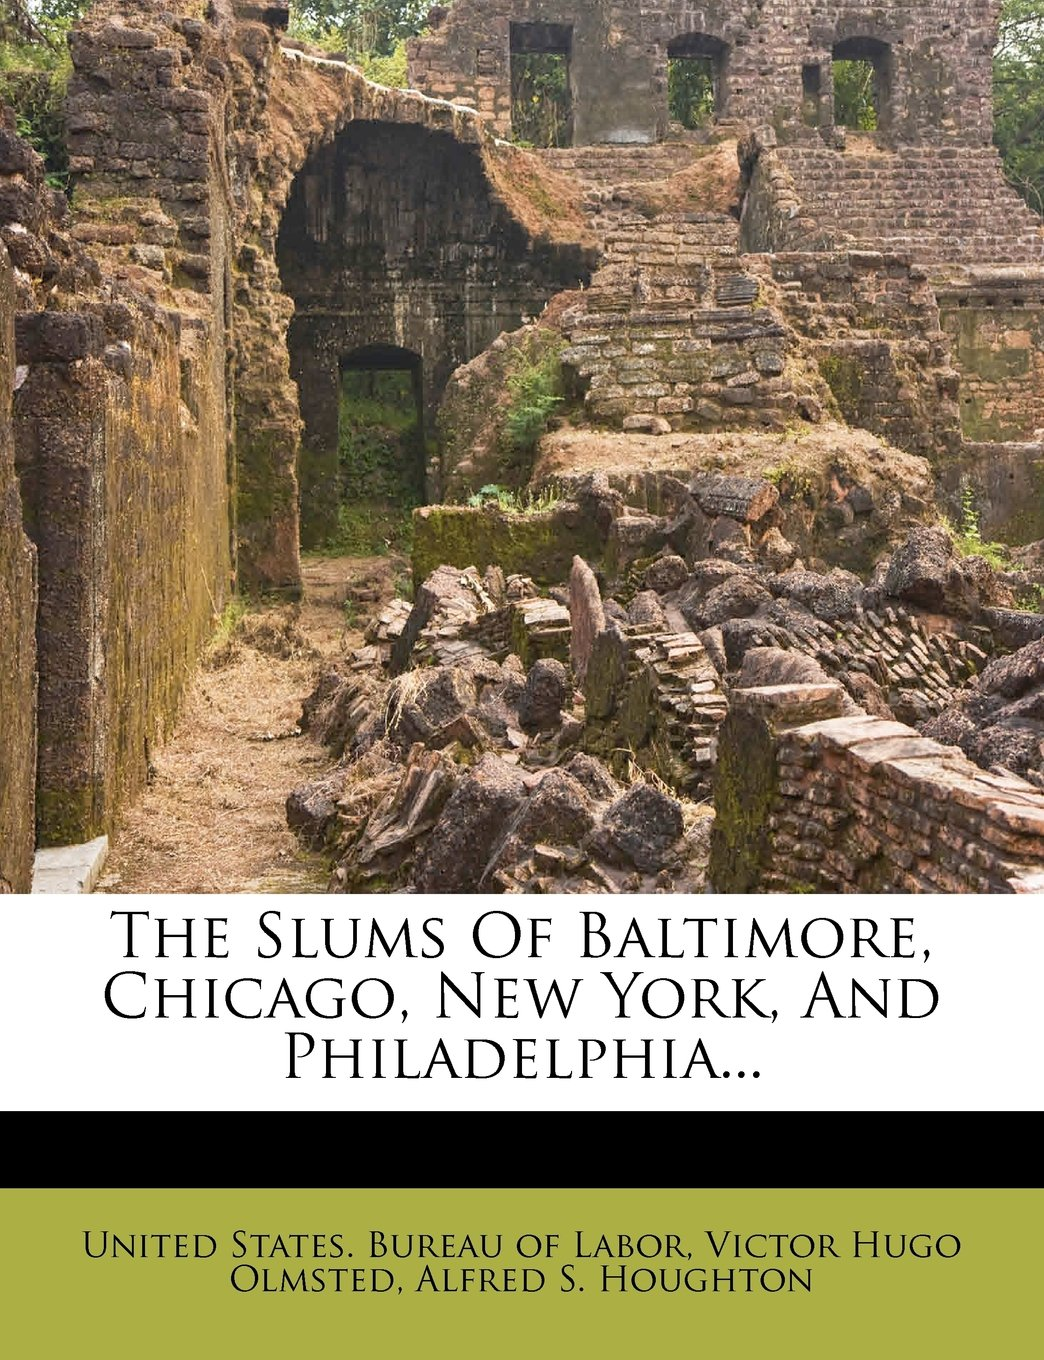 Download The Slums Of Baltimore, Chicago, New York, And Philadelphia... PDF